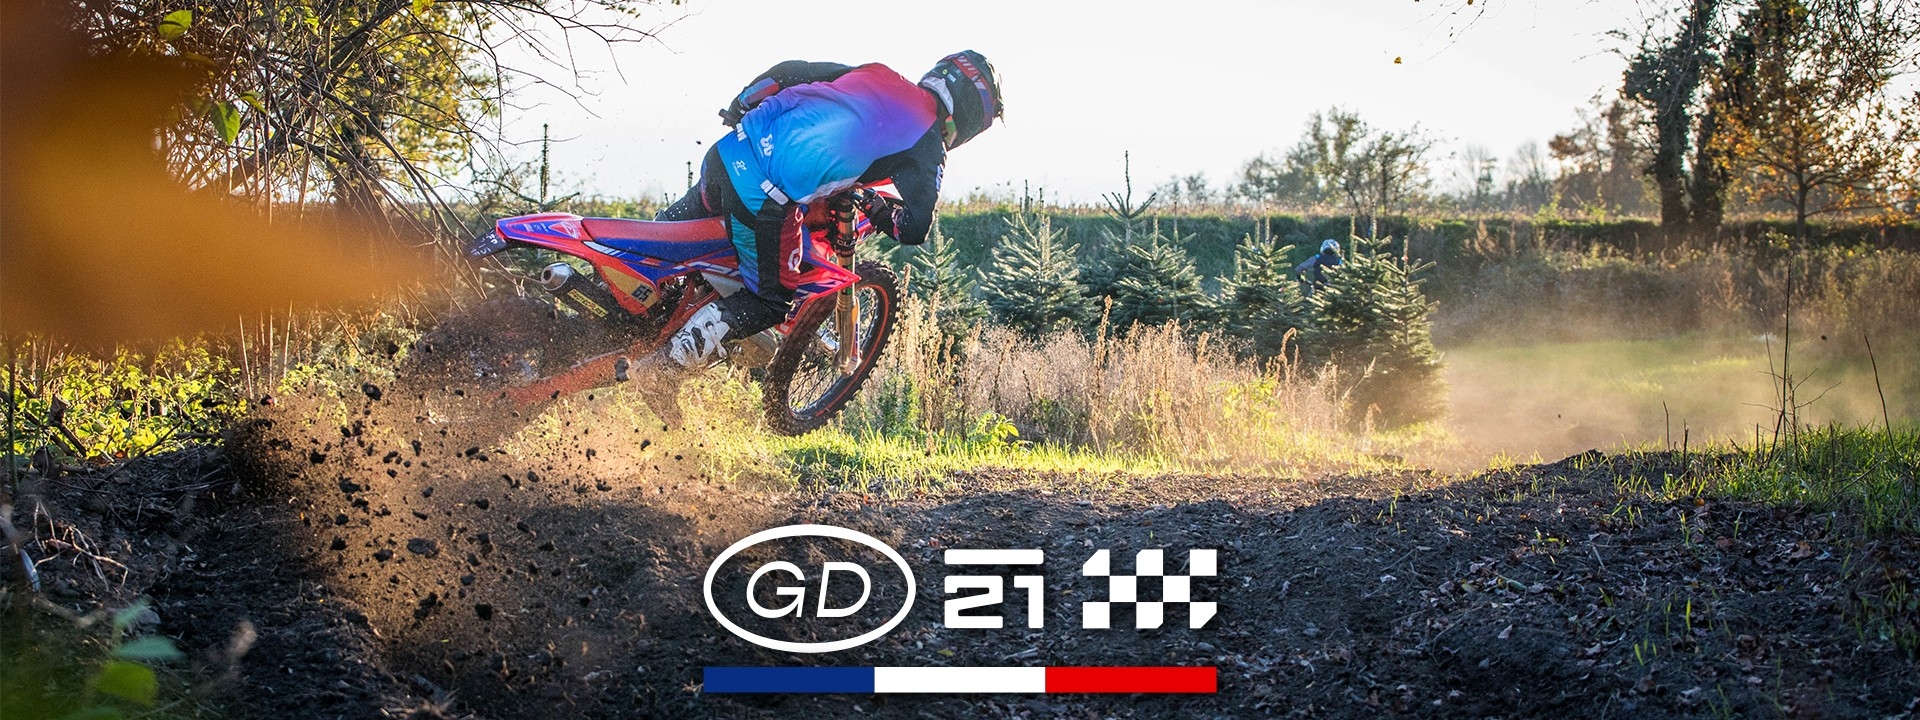 Tenue GD21 motocross - enduro - quad : pantalon - maillot - gants